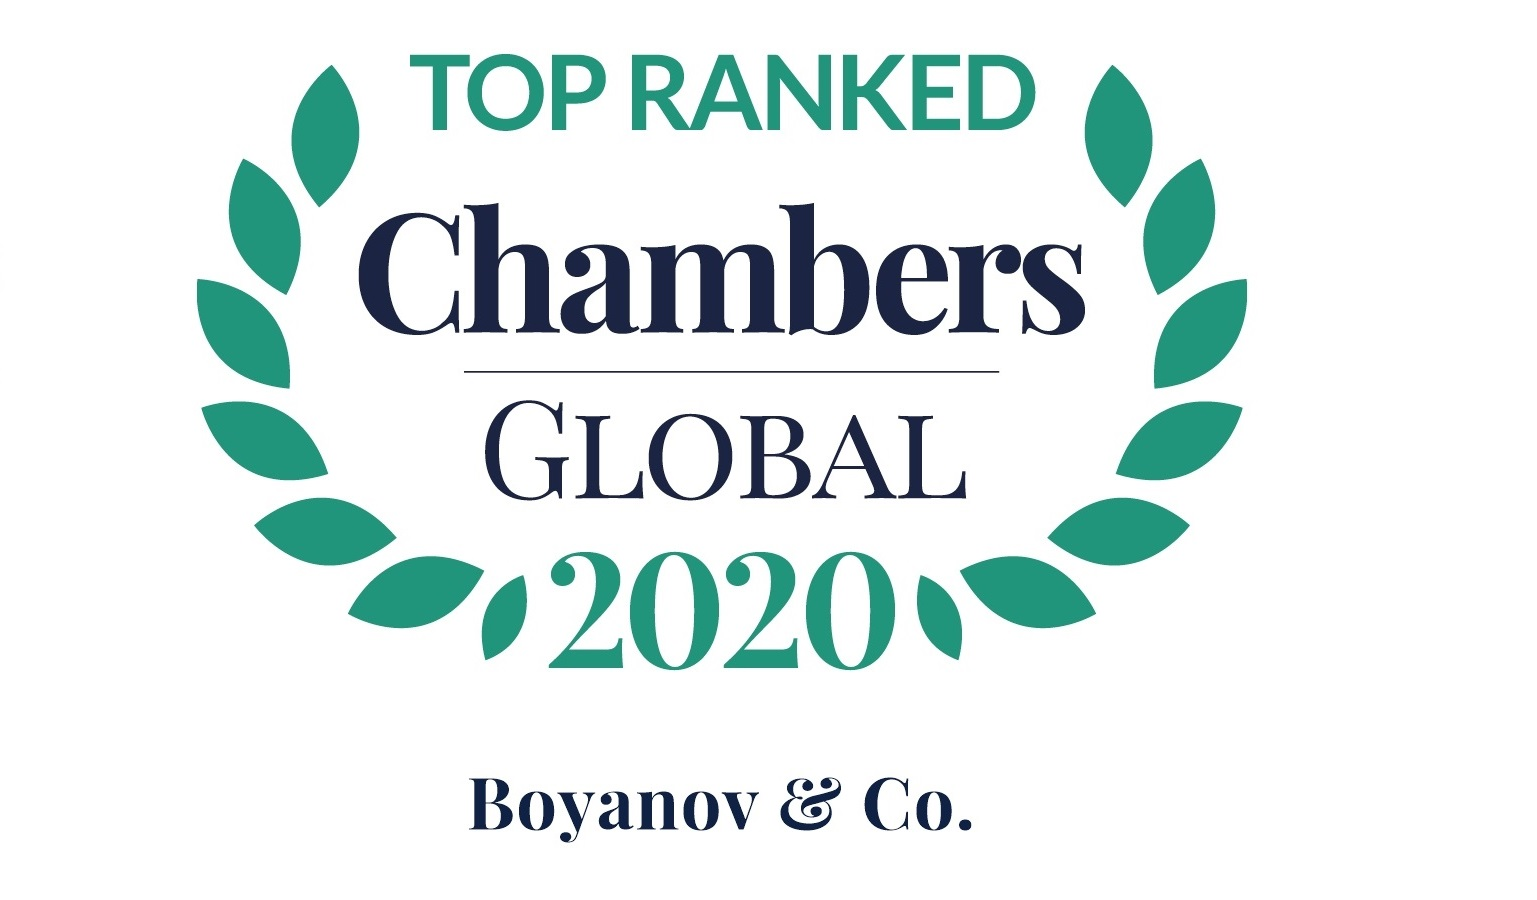 boyanov-co-maintains-its-position-as-market-leader-in-chambers-global-2020